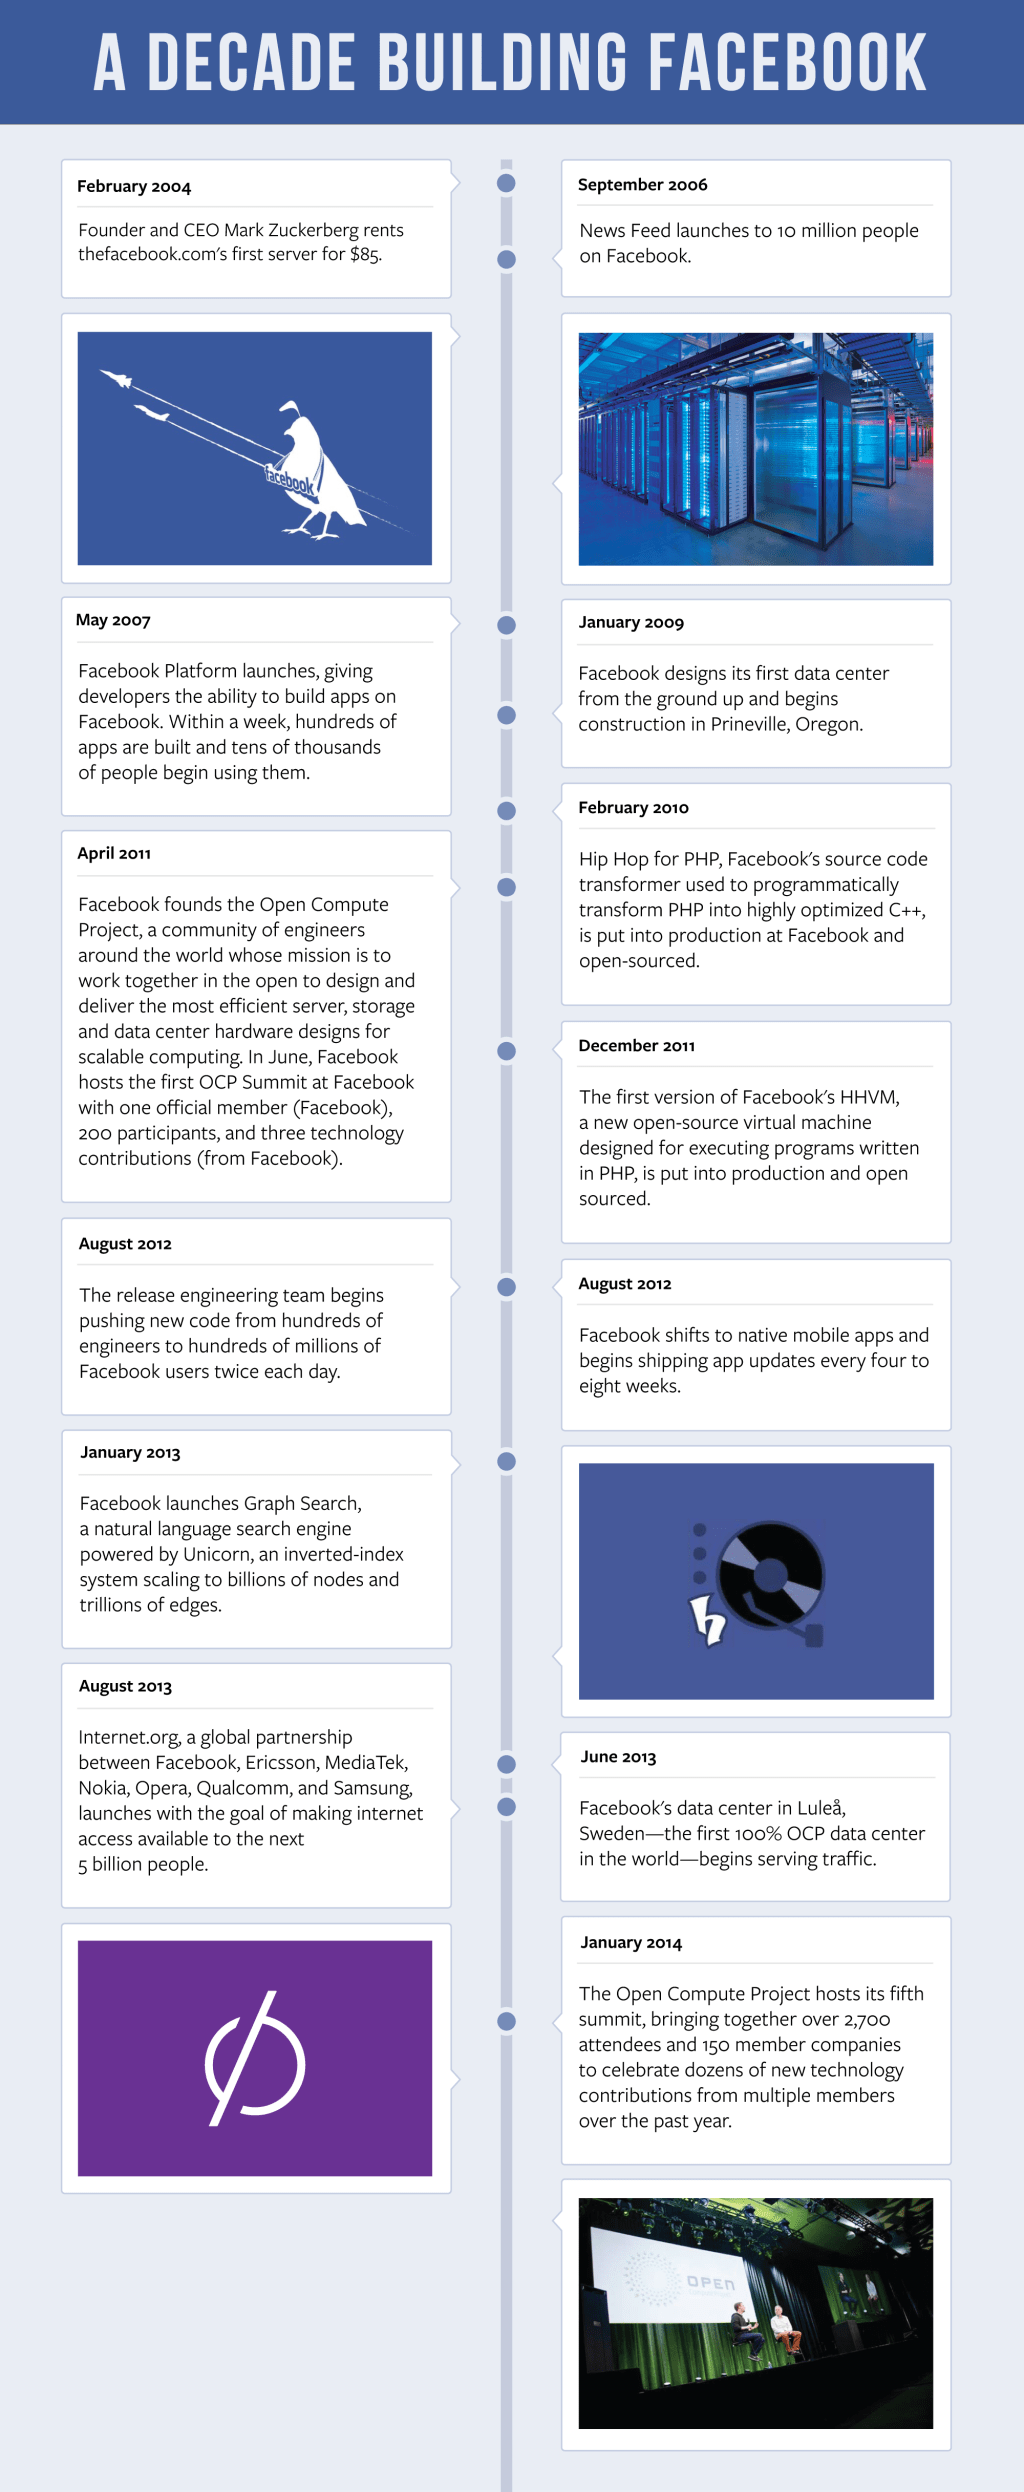 Facebook engineering timeline